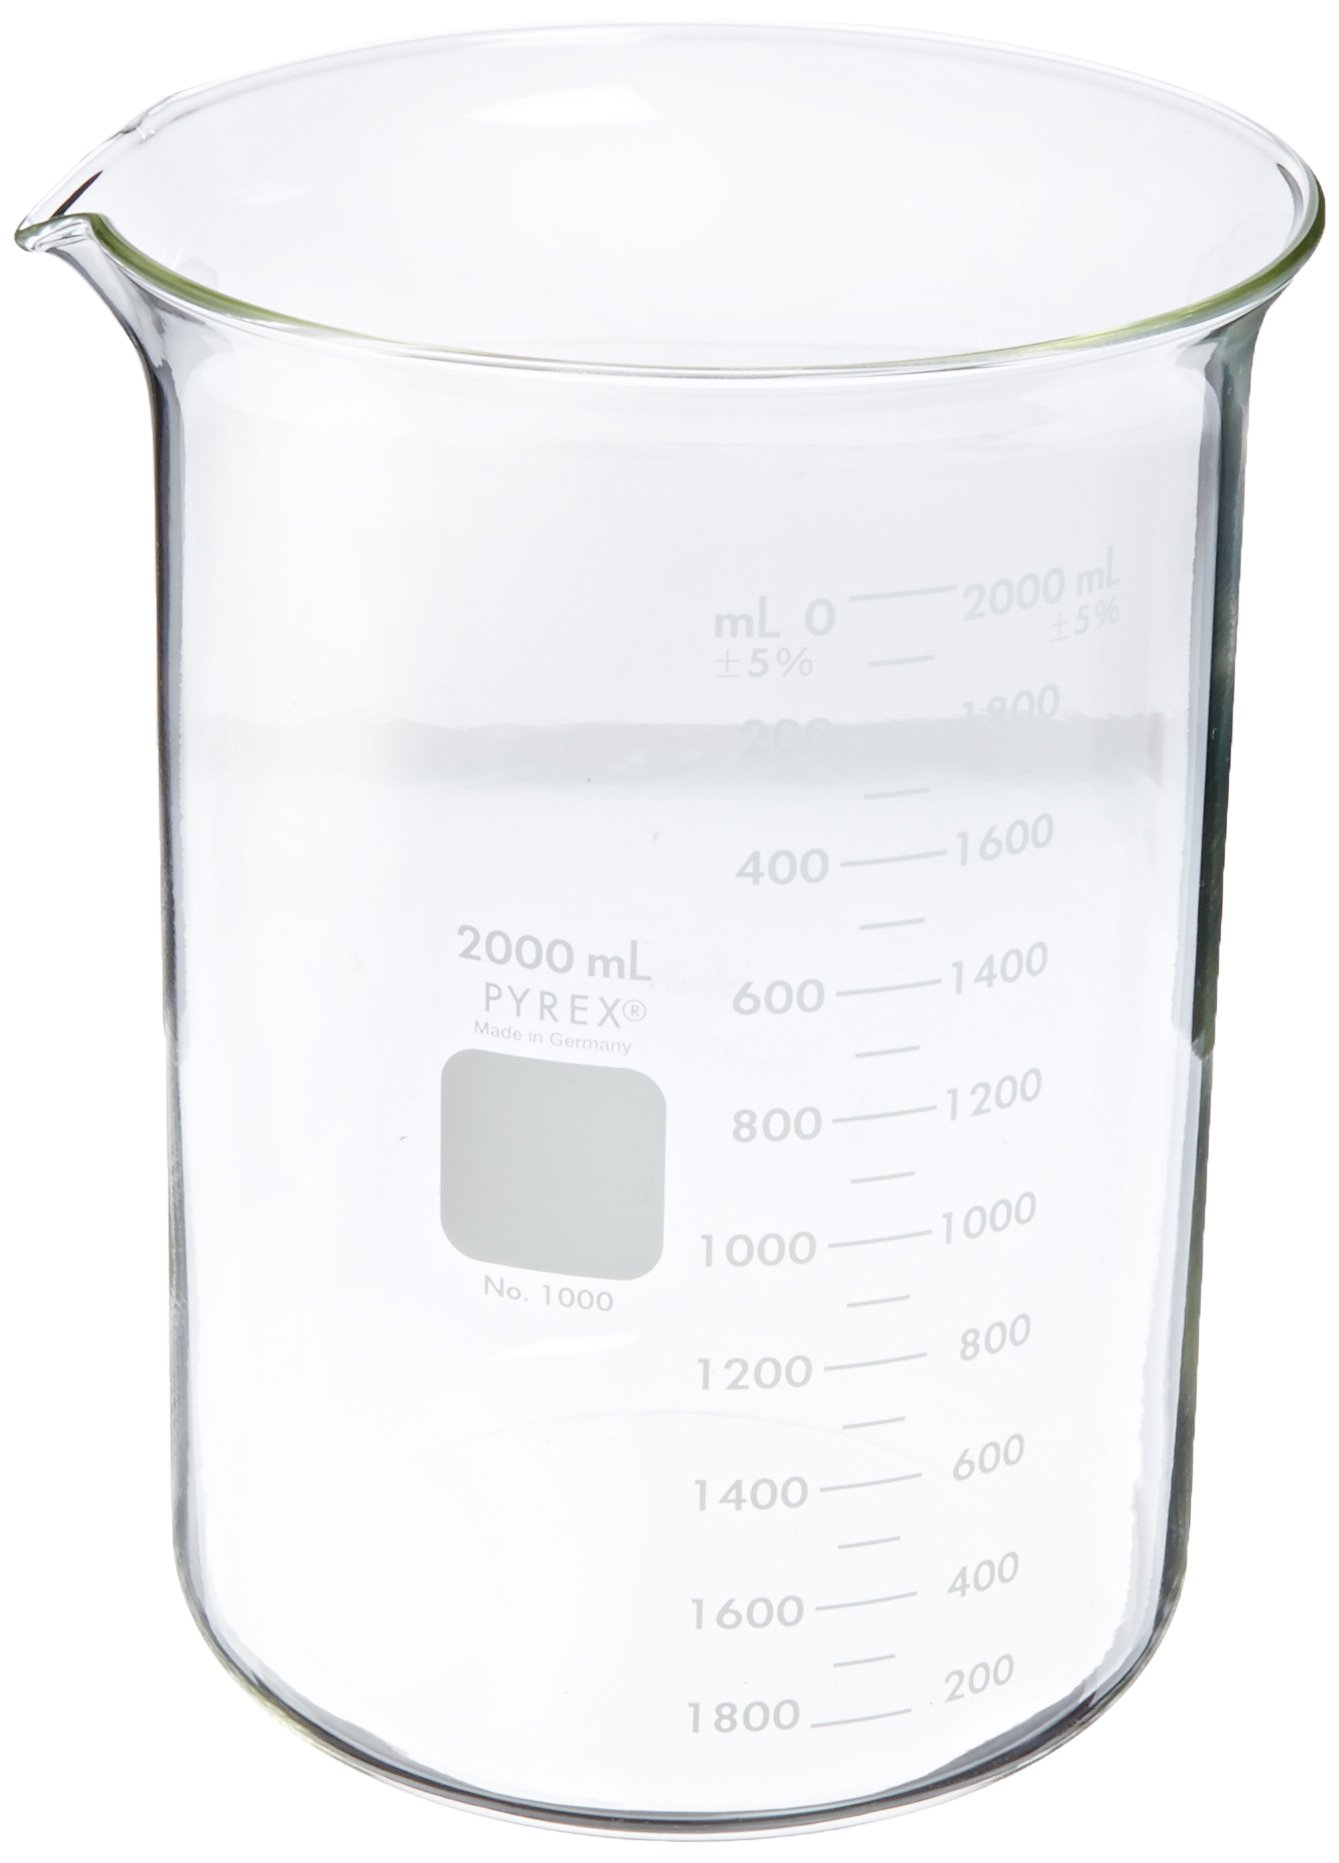 Corning Pyrex 1000-2L Glass 2 Liter Graduated Low Form Griffin Beaker, 100mL Graduation Interval, with Double Scale (Pack of 4)